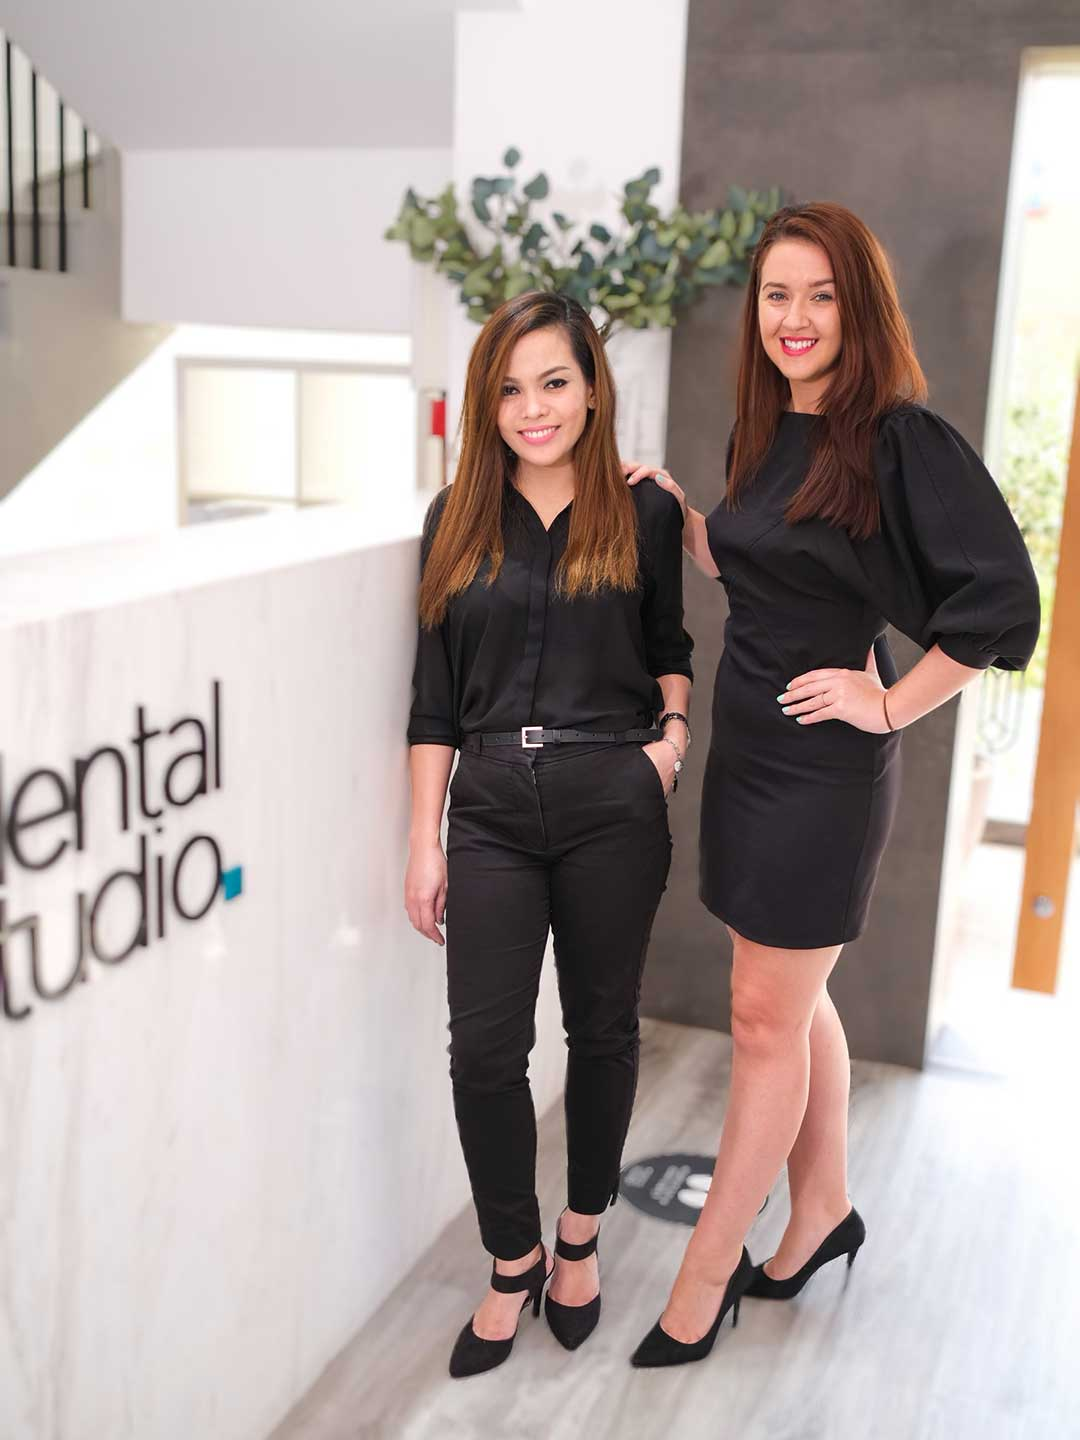 Dentists in Jumeirah